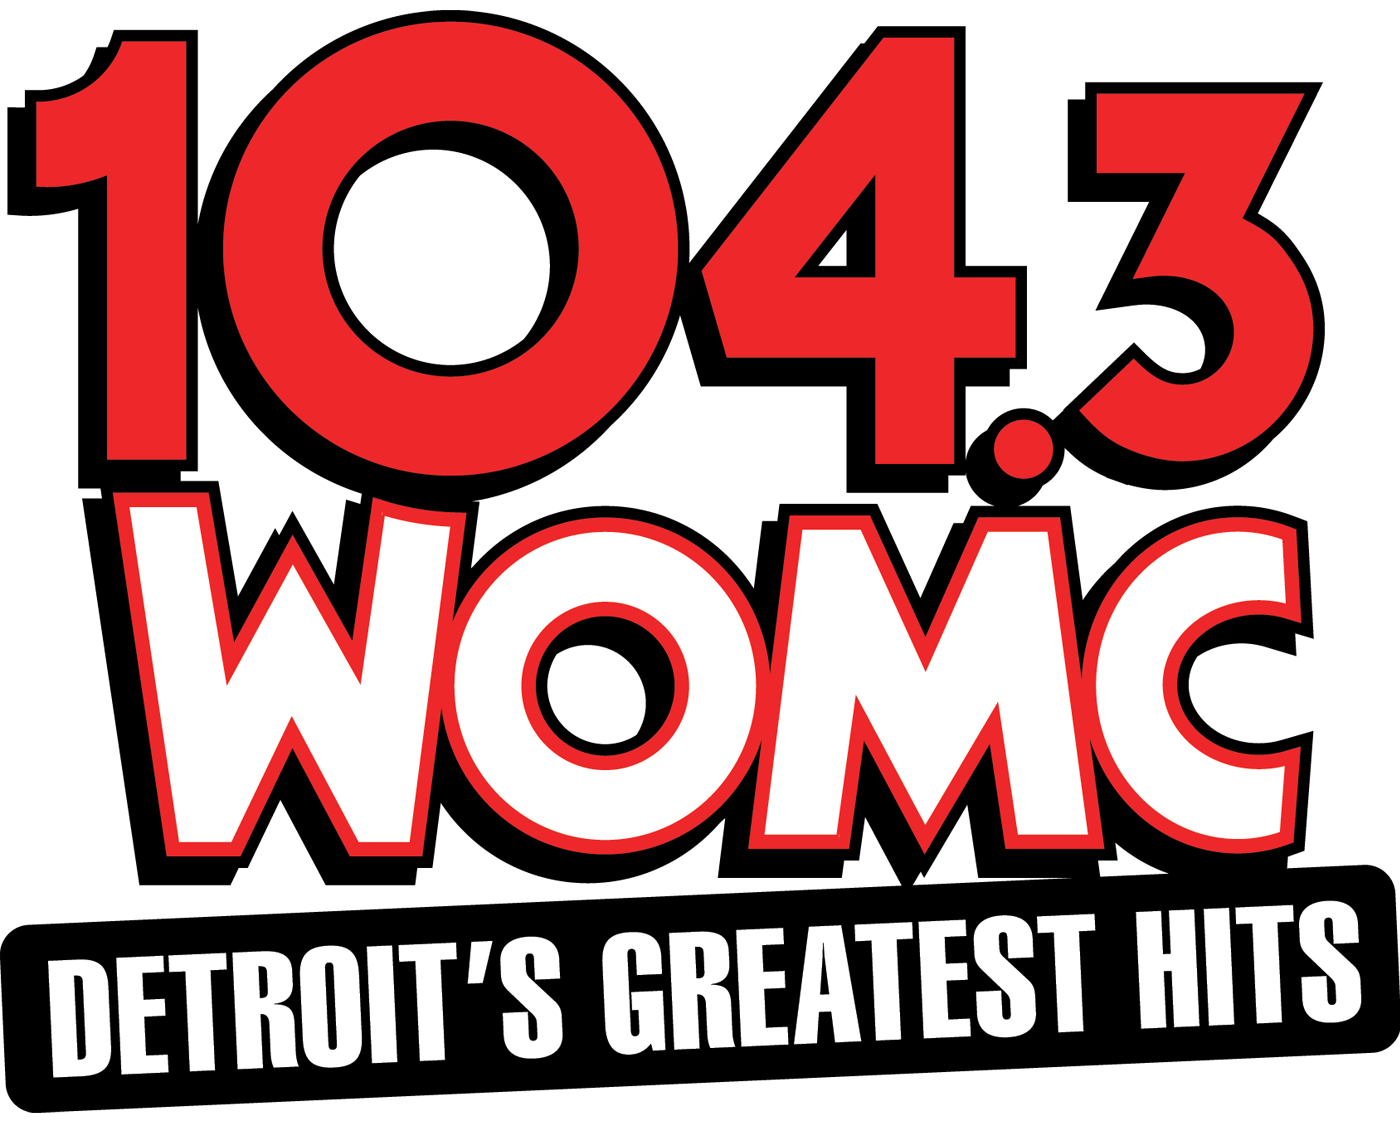 WOMC - Detroit's Greatest Hits